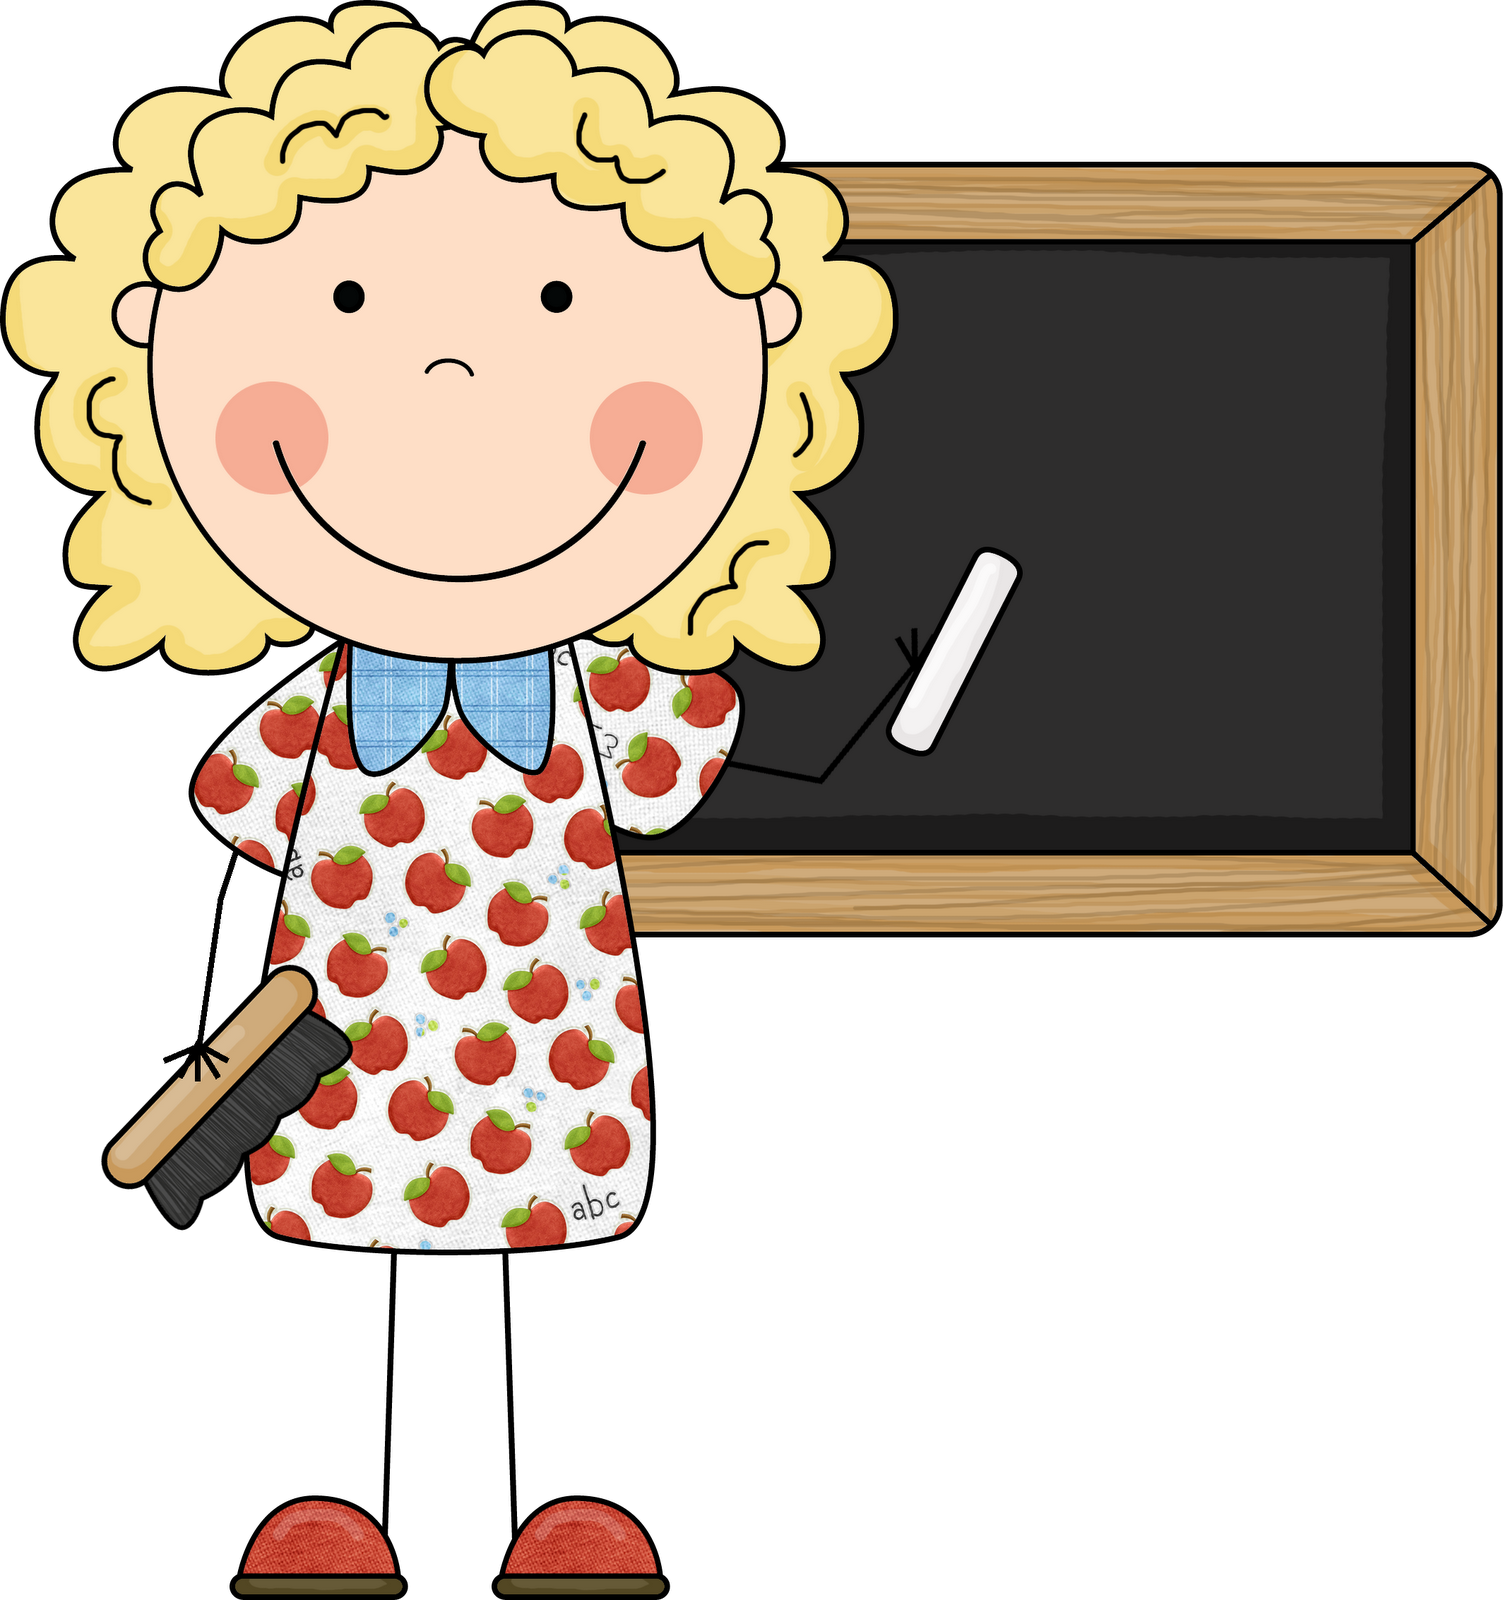 clipart of teaching - photo #10